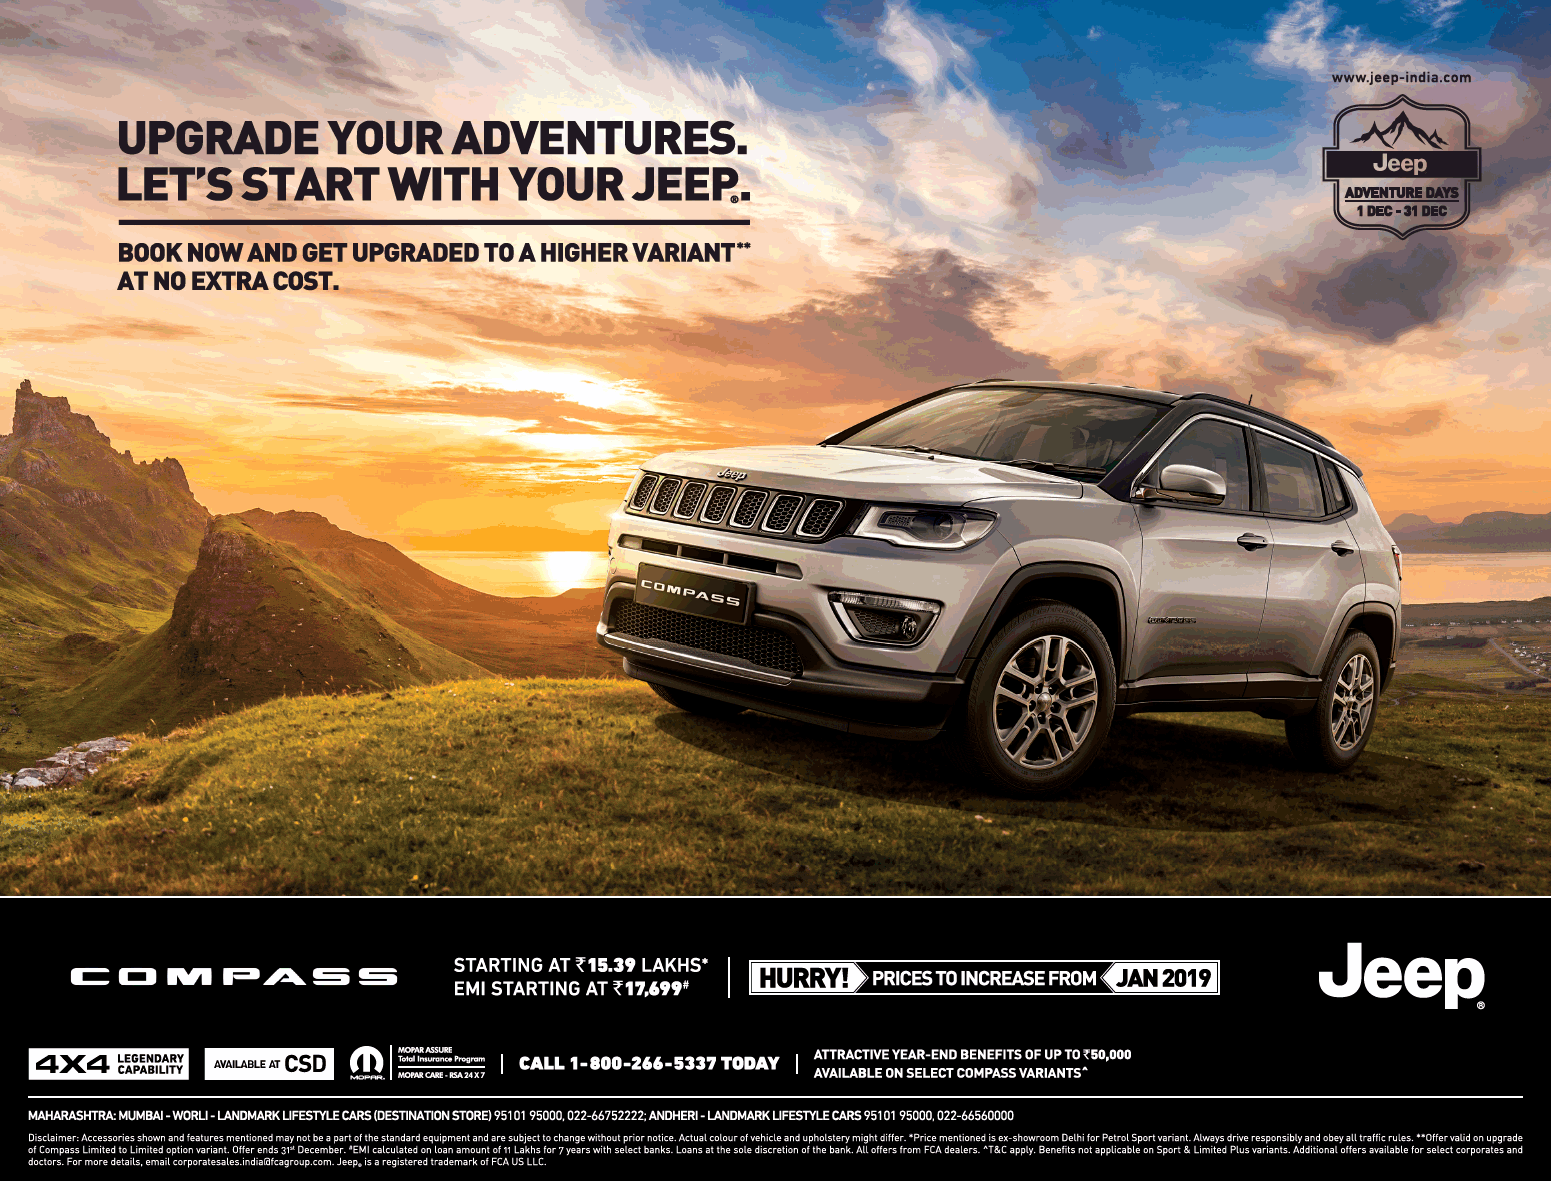 Jeep Car Compass Upgrade Your Adventures Ad In Times Of India